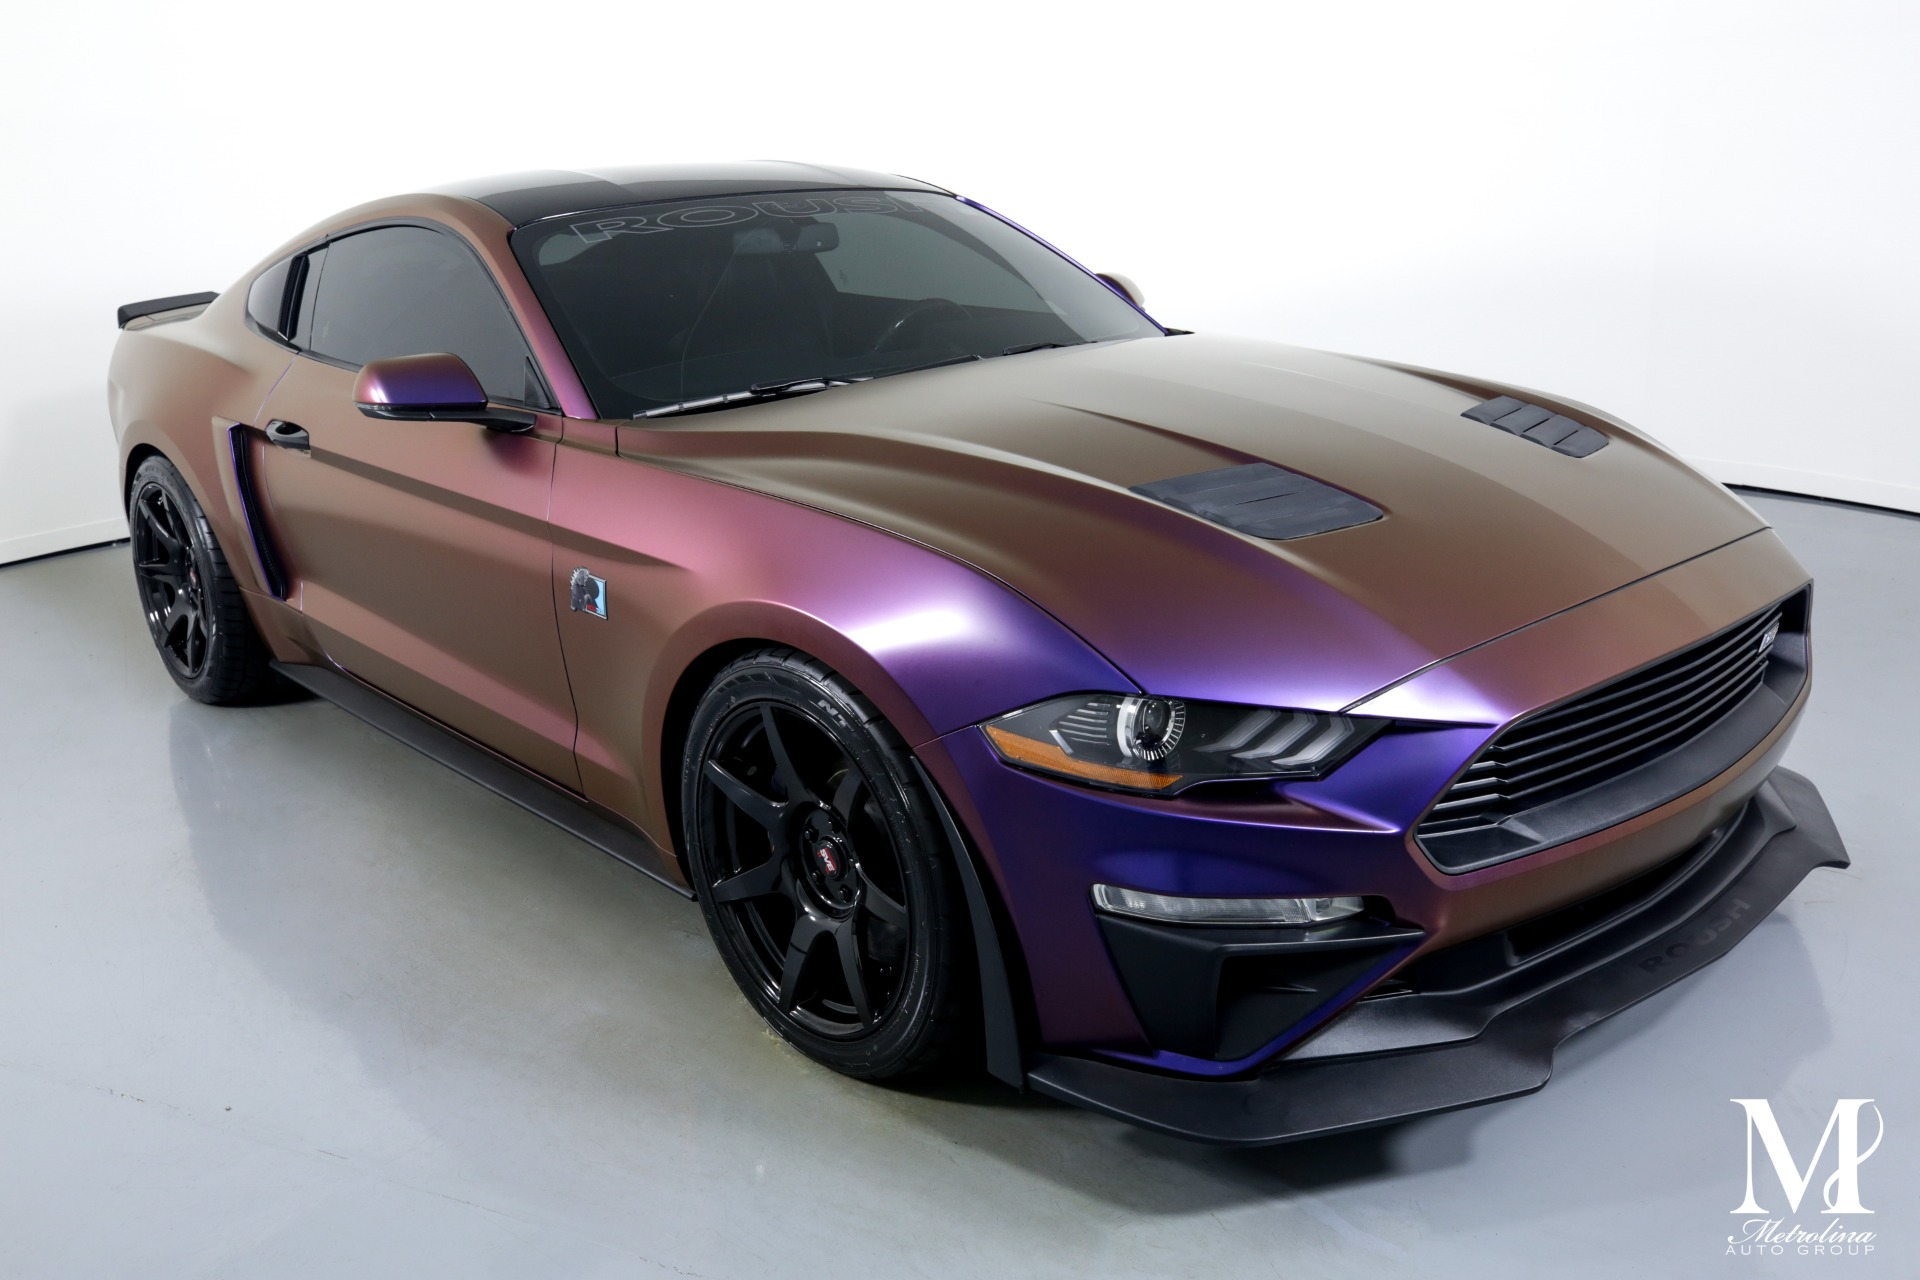 Used 2019 Ford Mustang GT Premium for sale Call for price at Metrolina Auto Group in Charlotte NC 28217 - 2